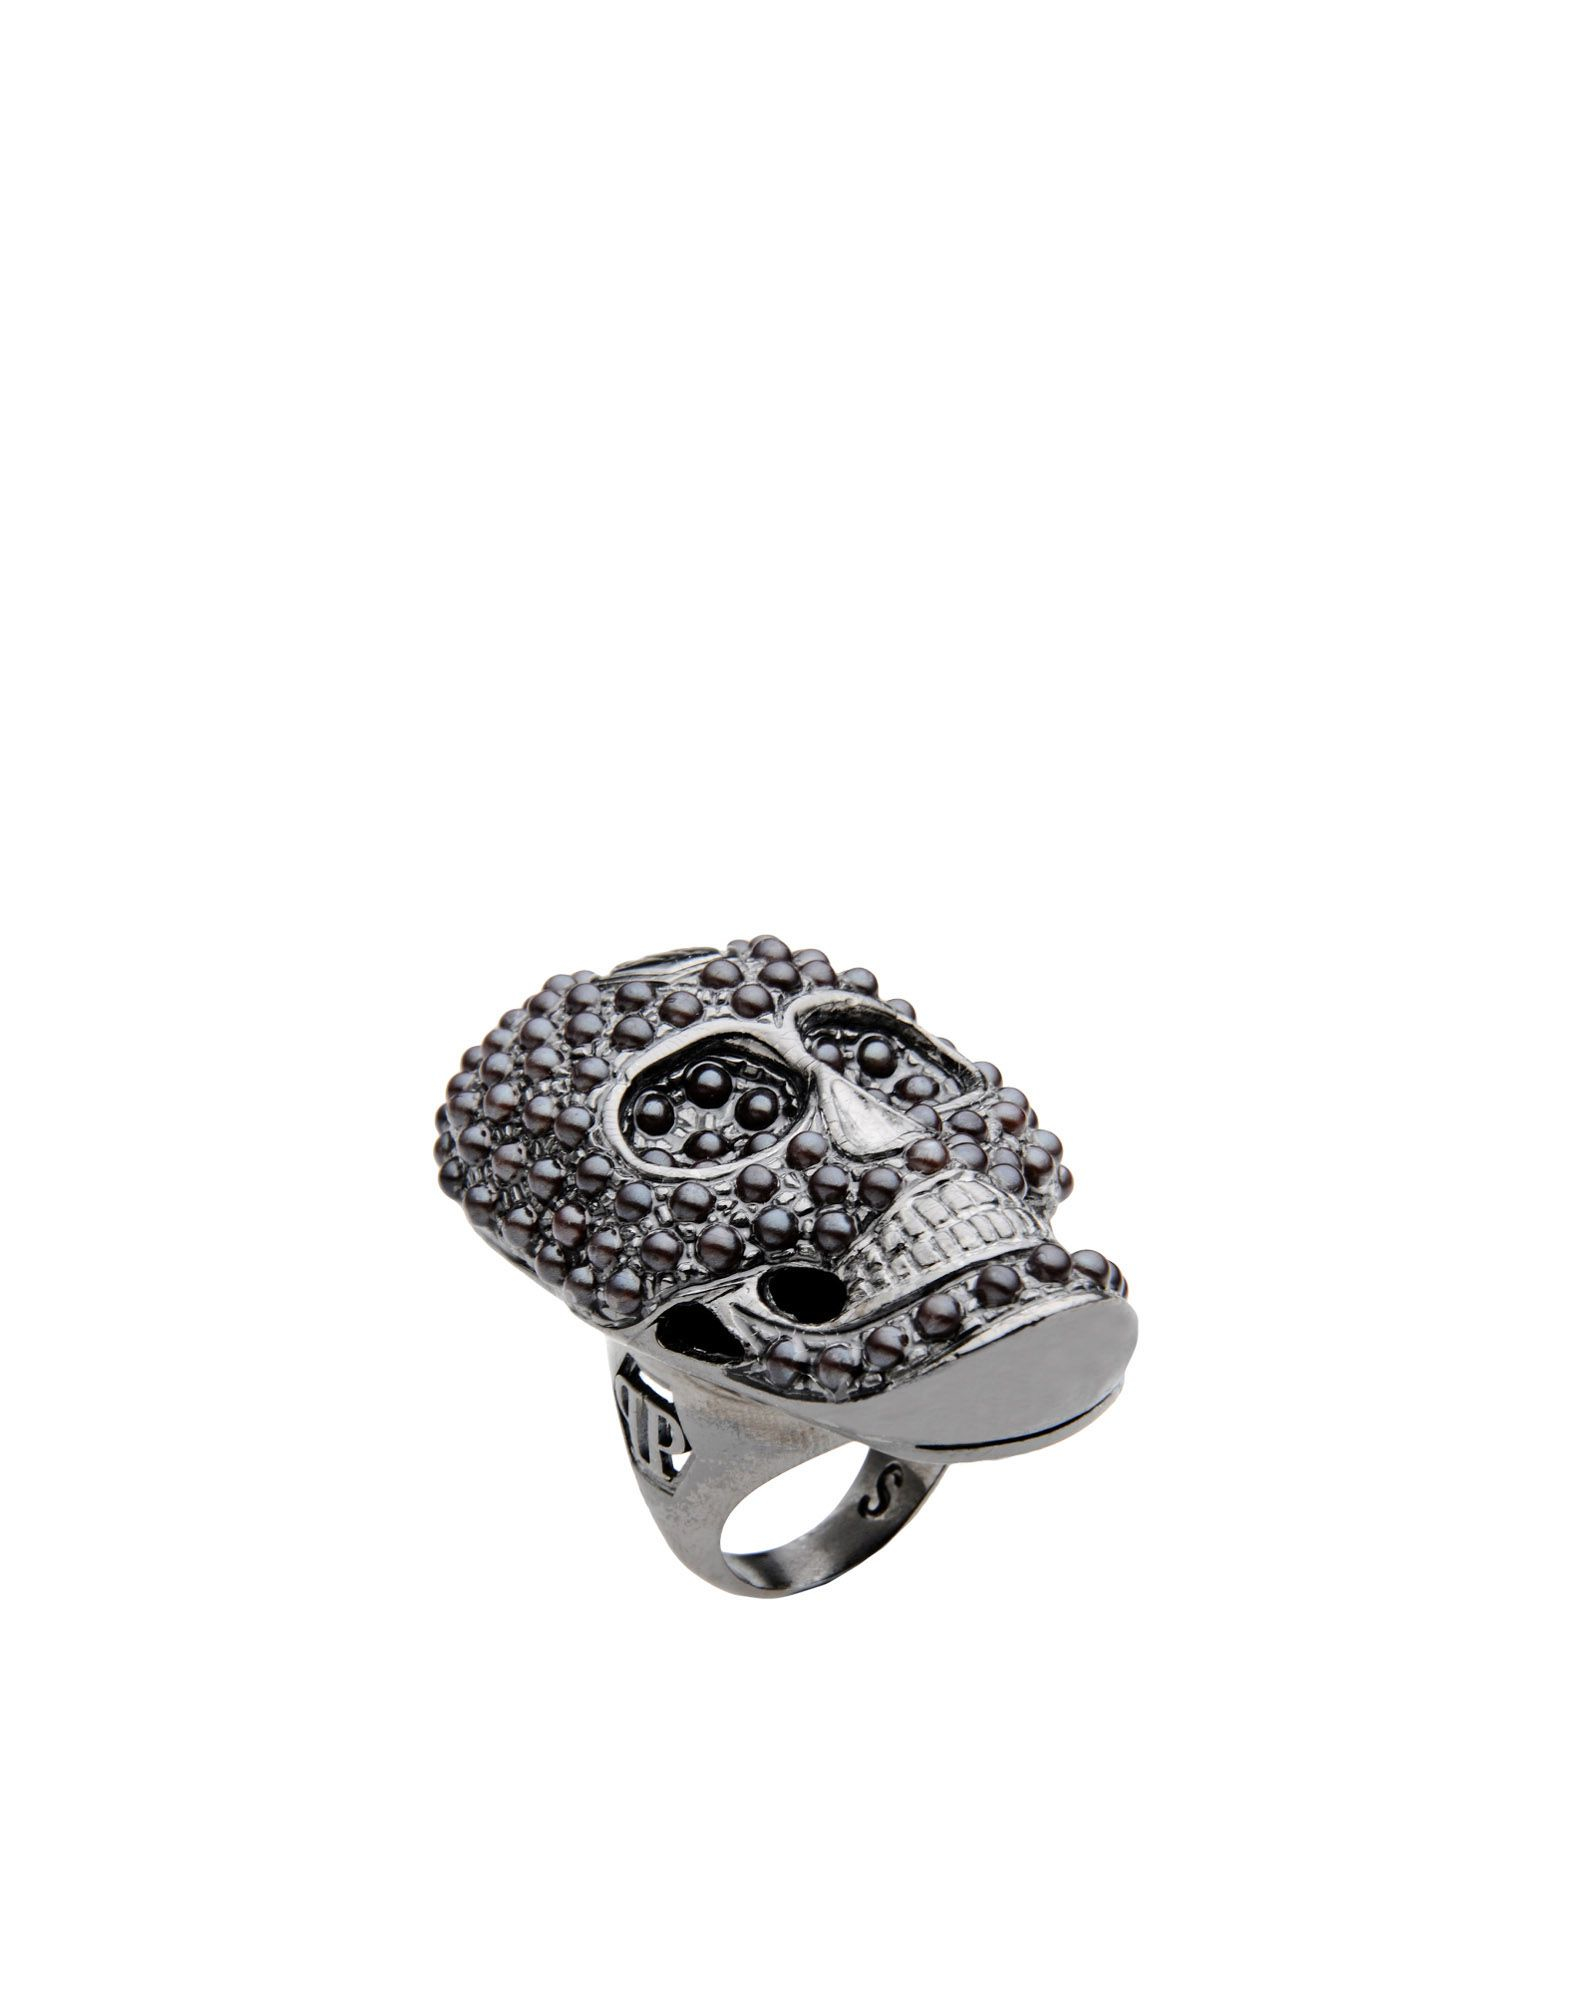 lyst philipp plein ring in gray